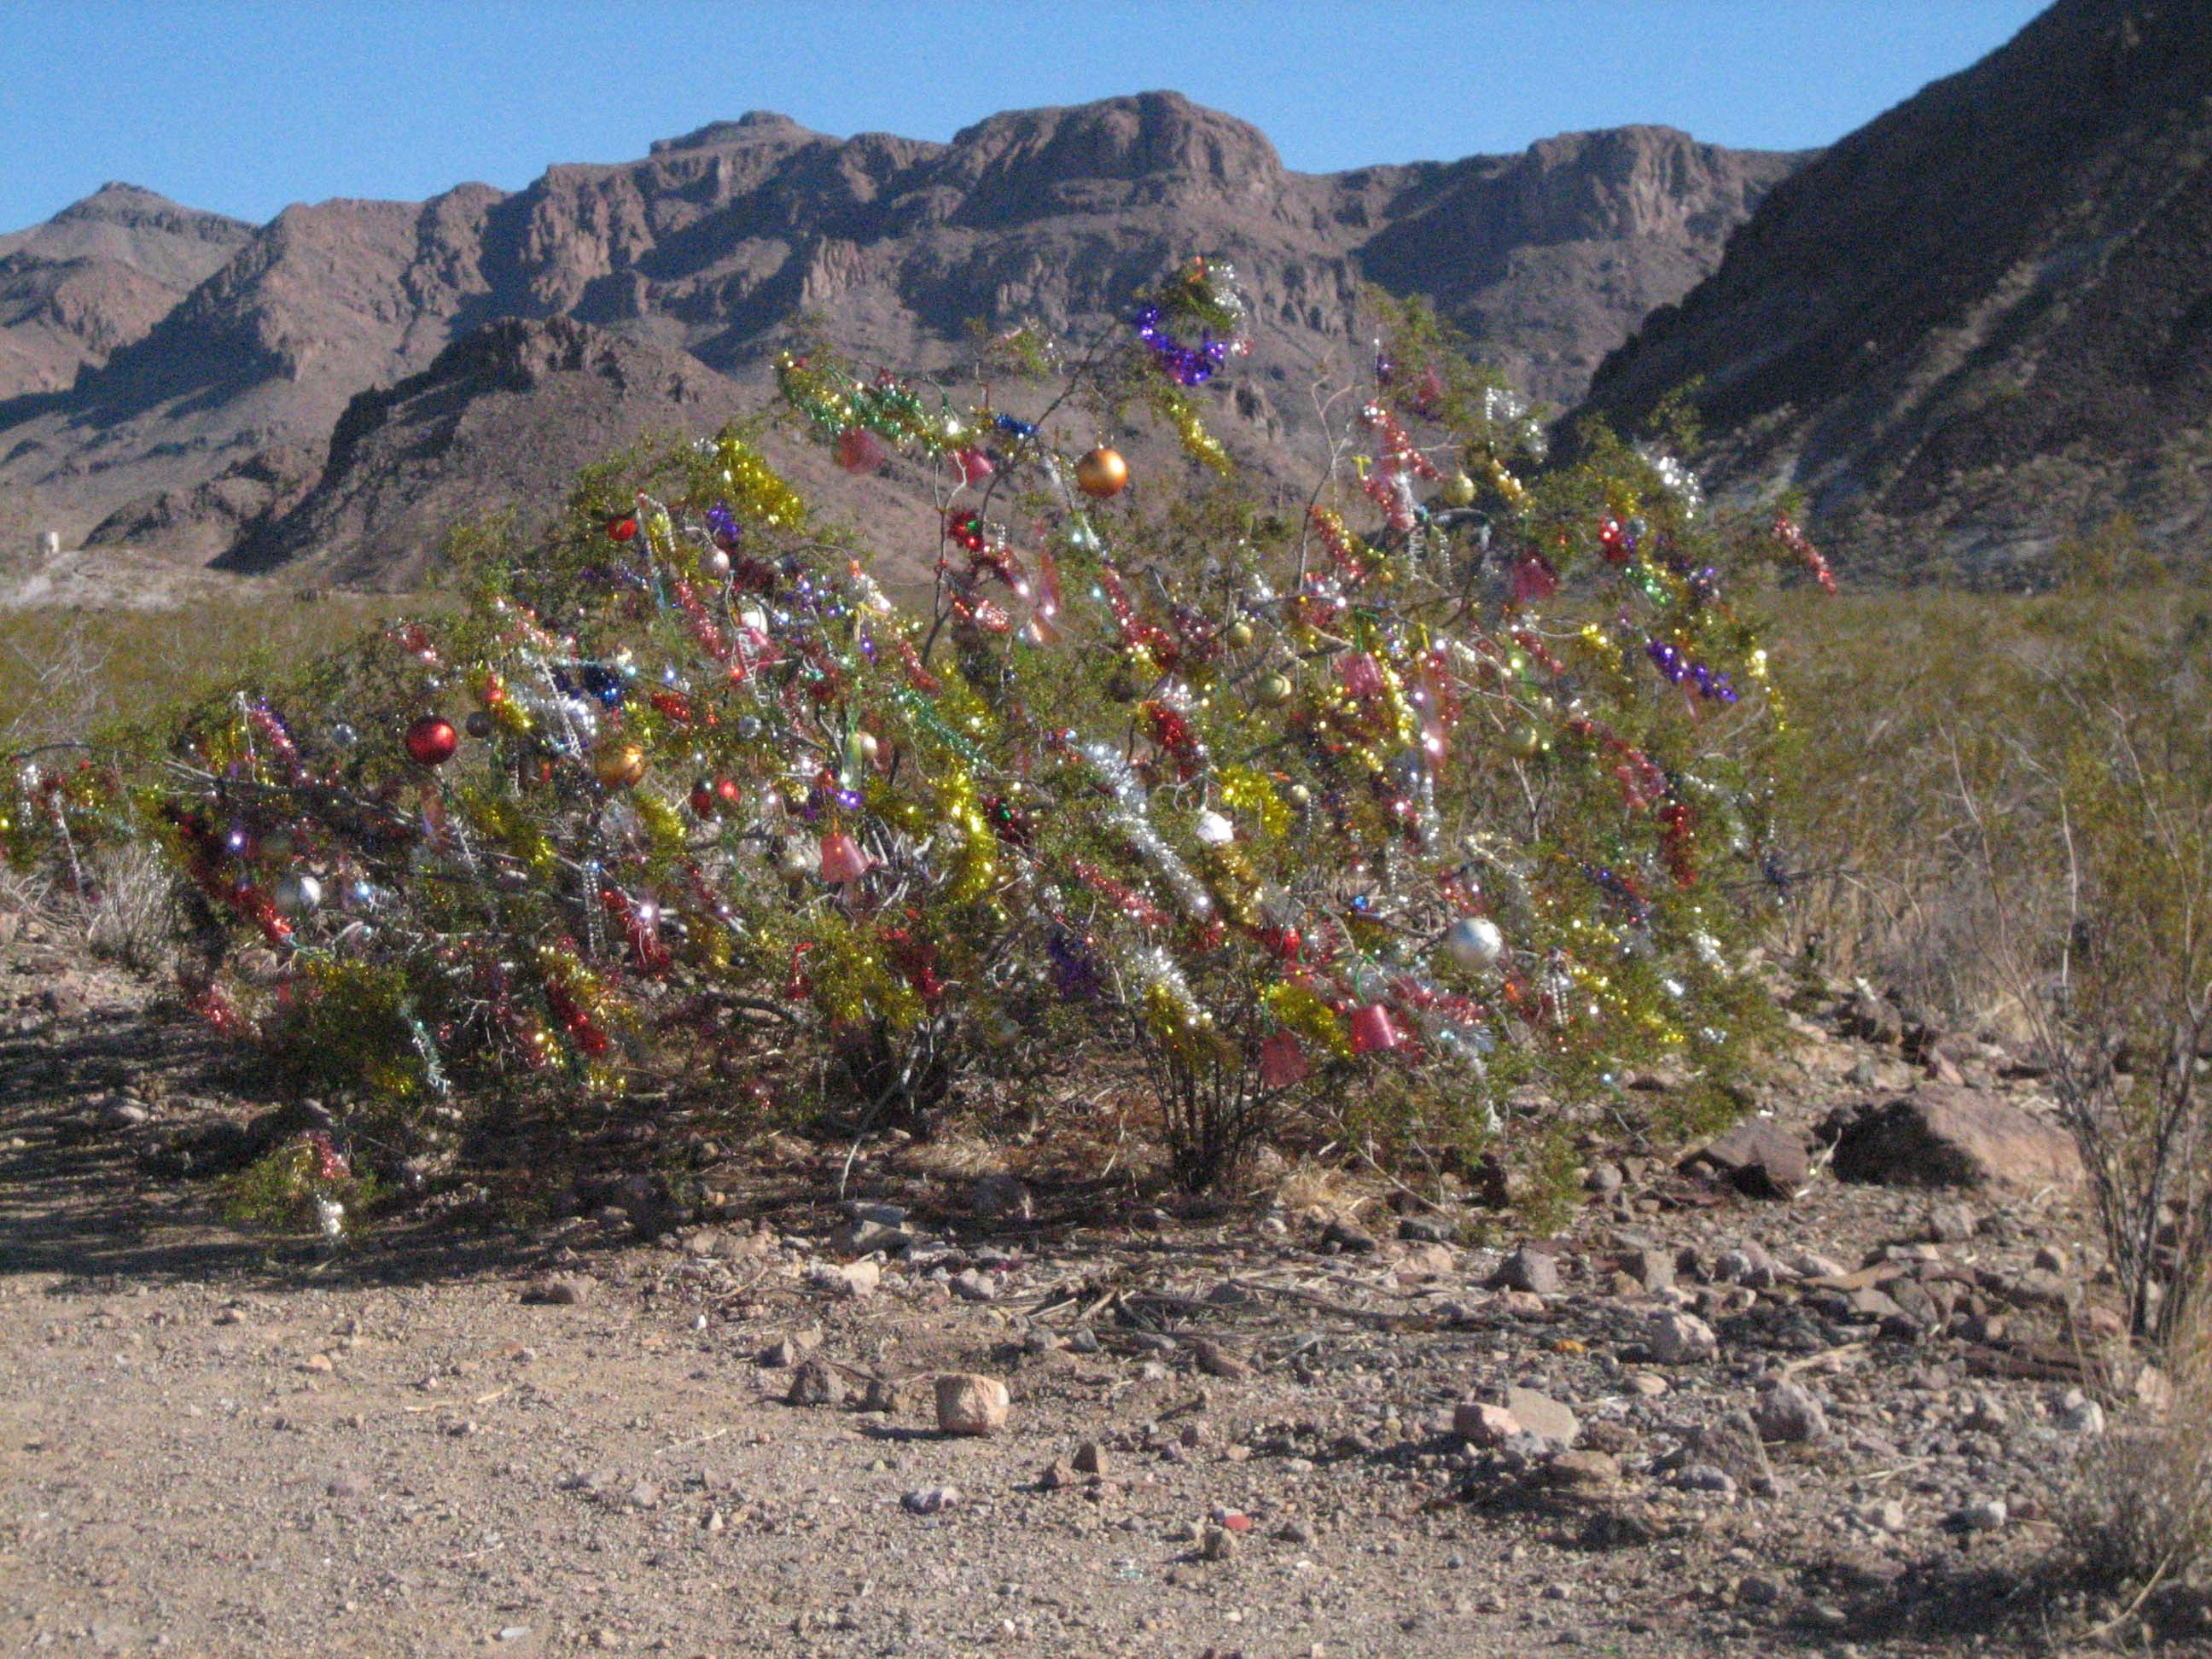 Christmas bush outside of Oatman